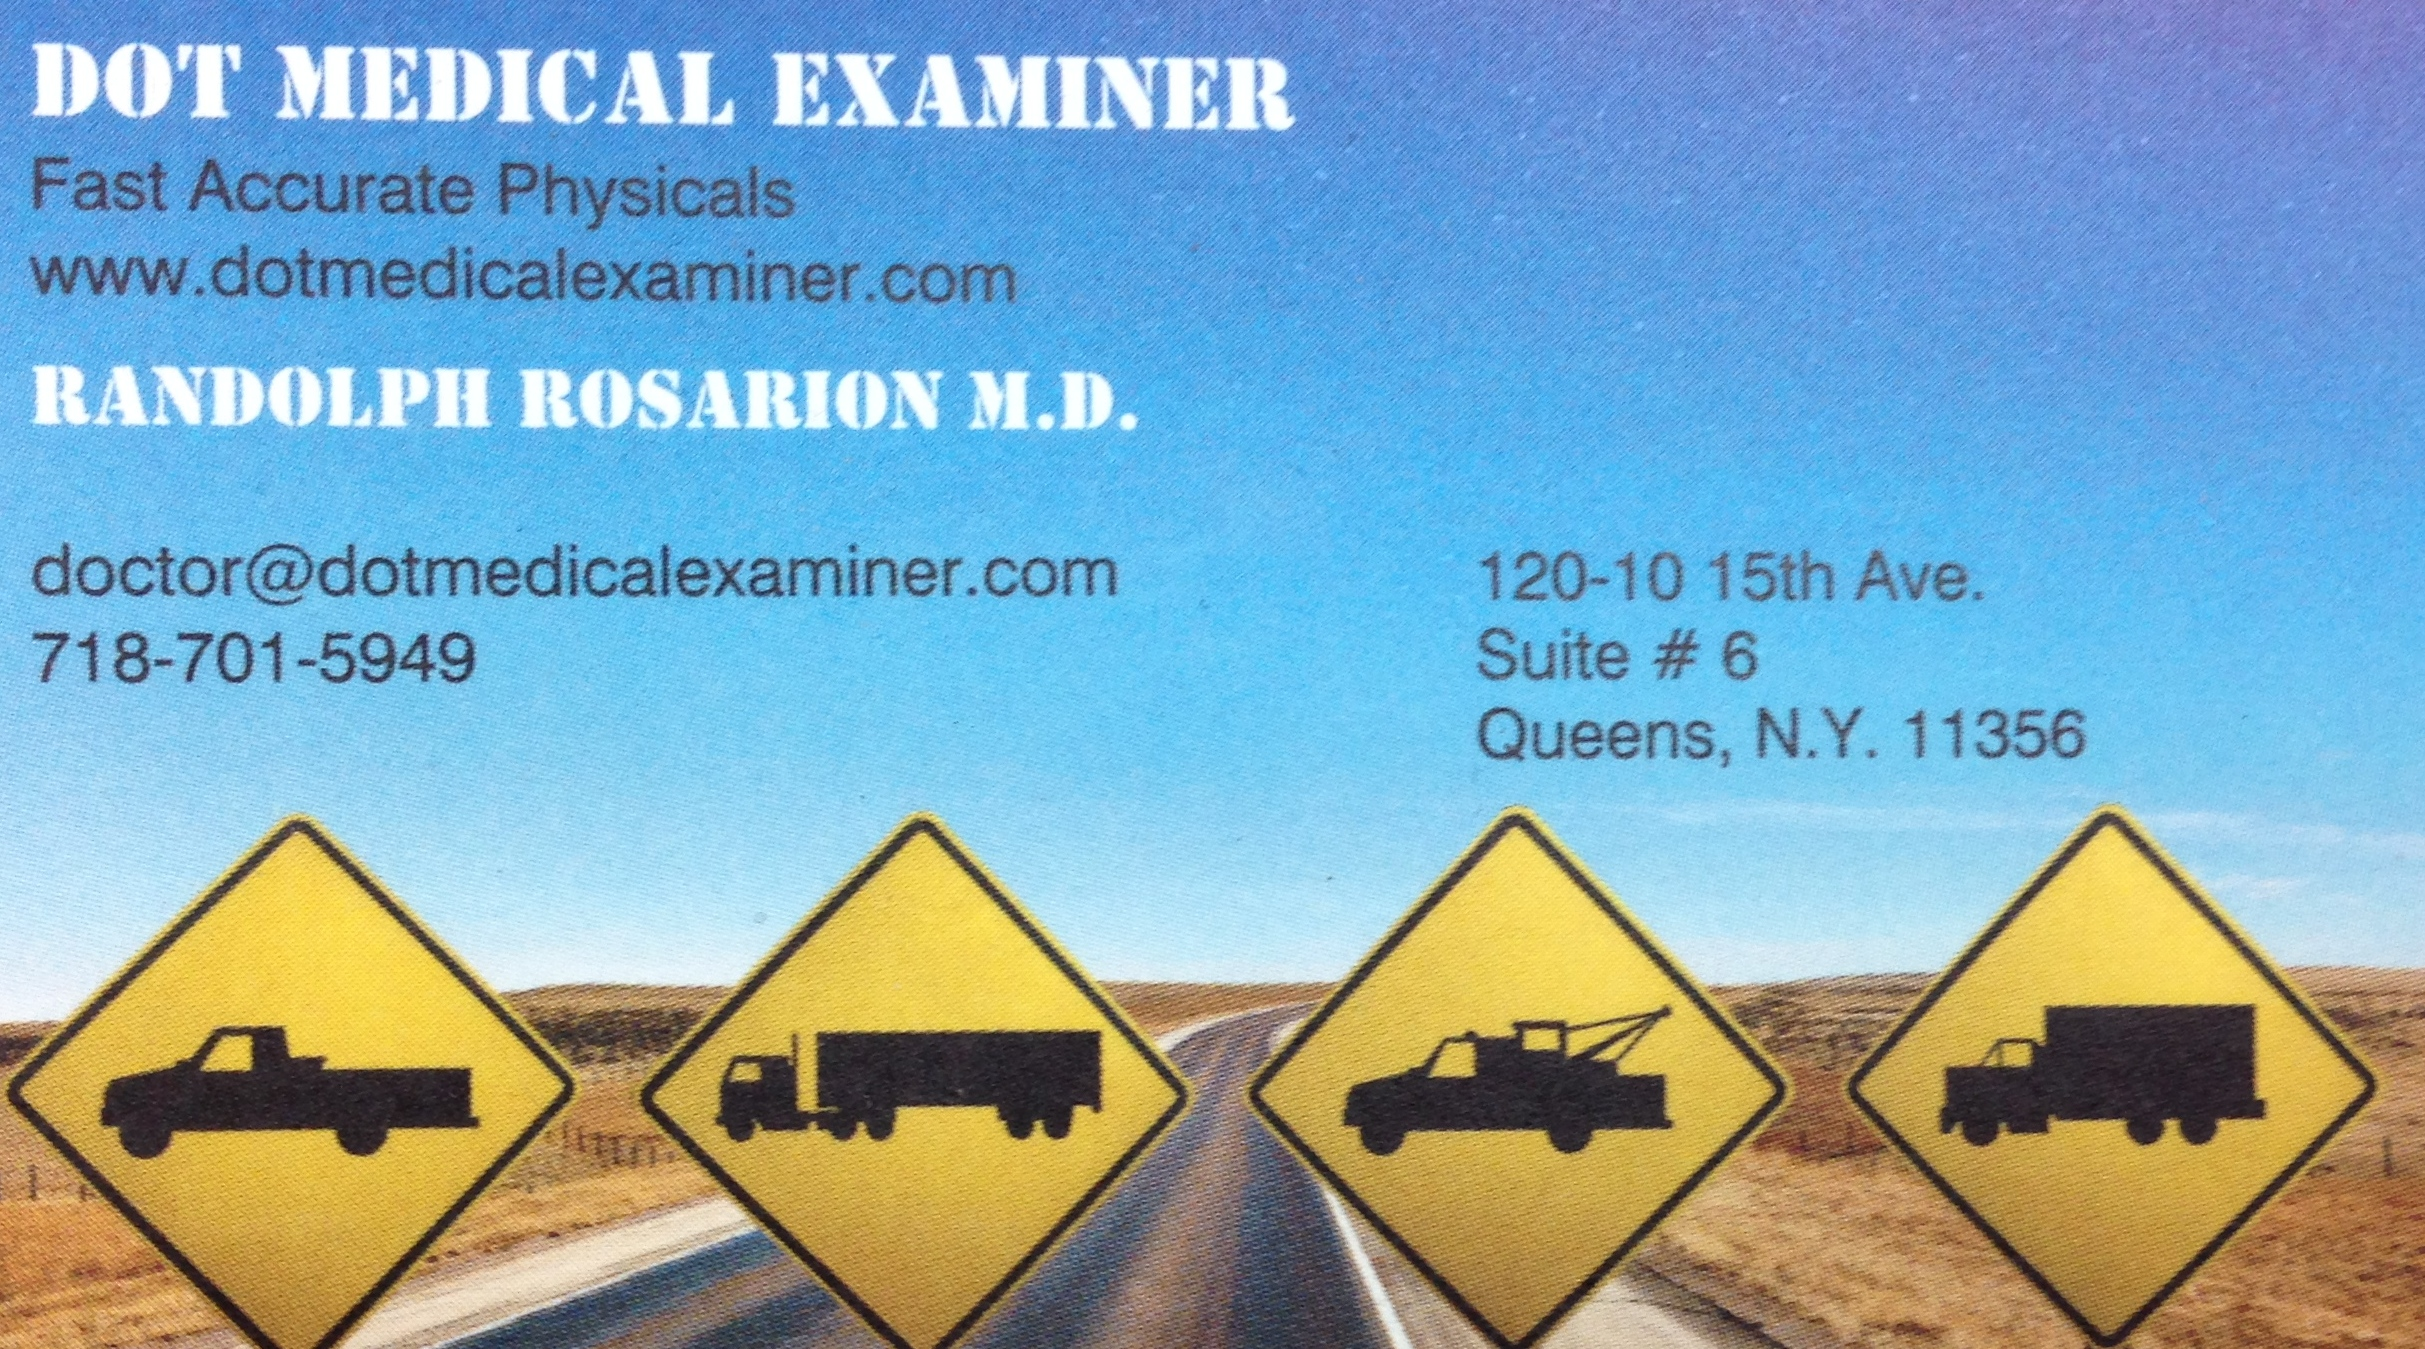 Dot Medical Examiner S Certificate Truck Driver Physicals Nyc